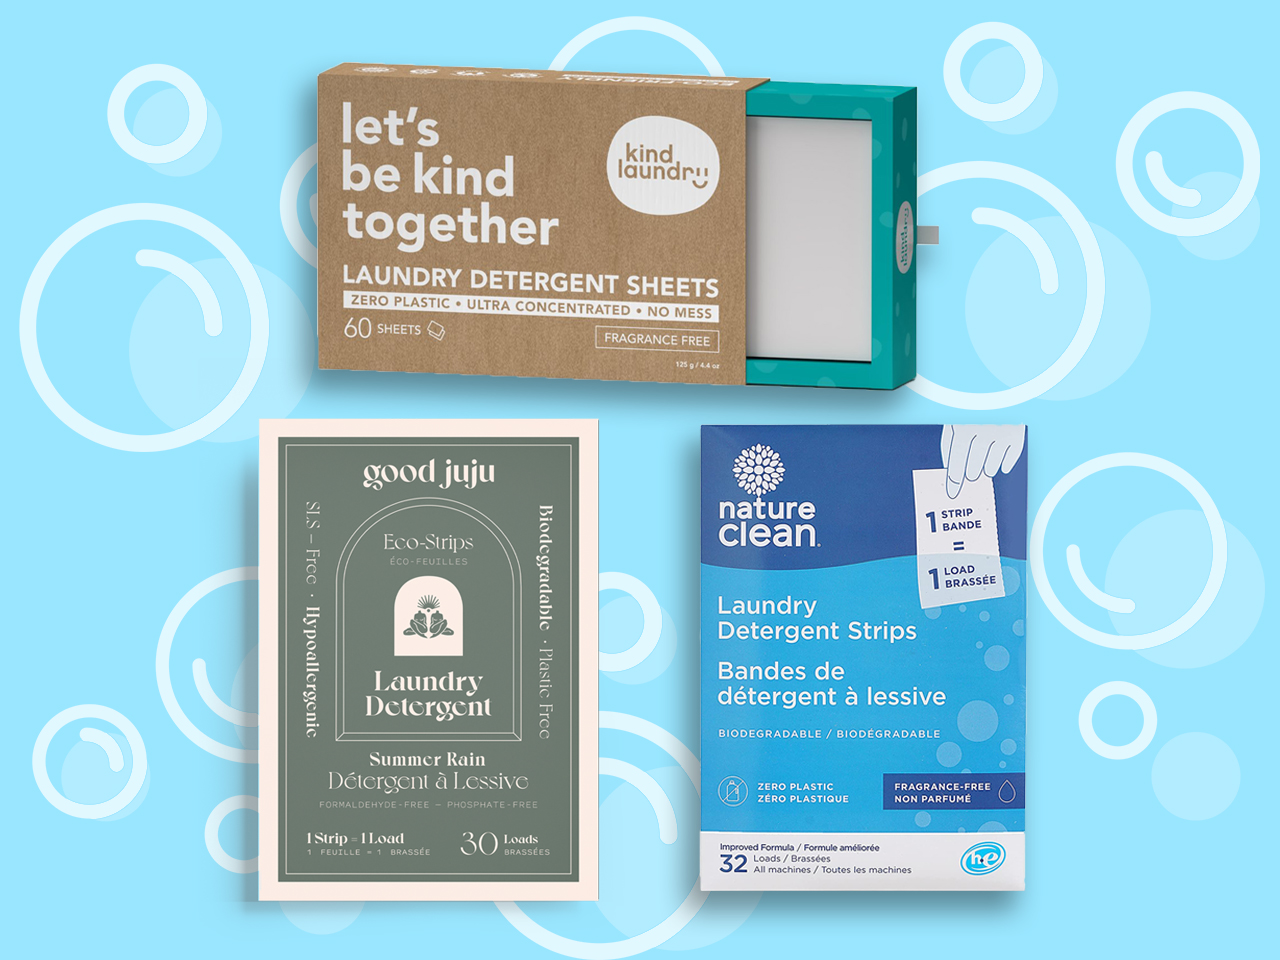 good juju, kind laundry and nature clean laundry strips